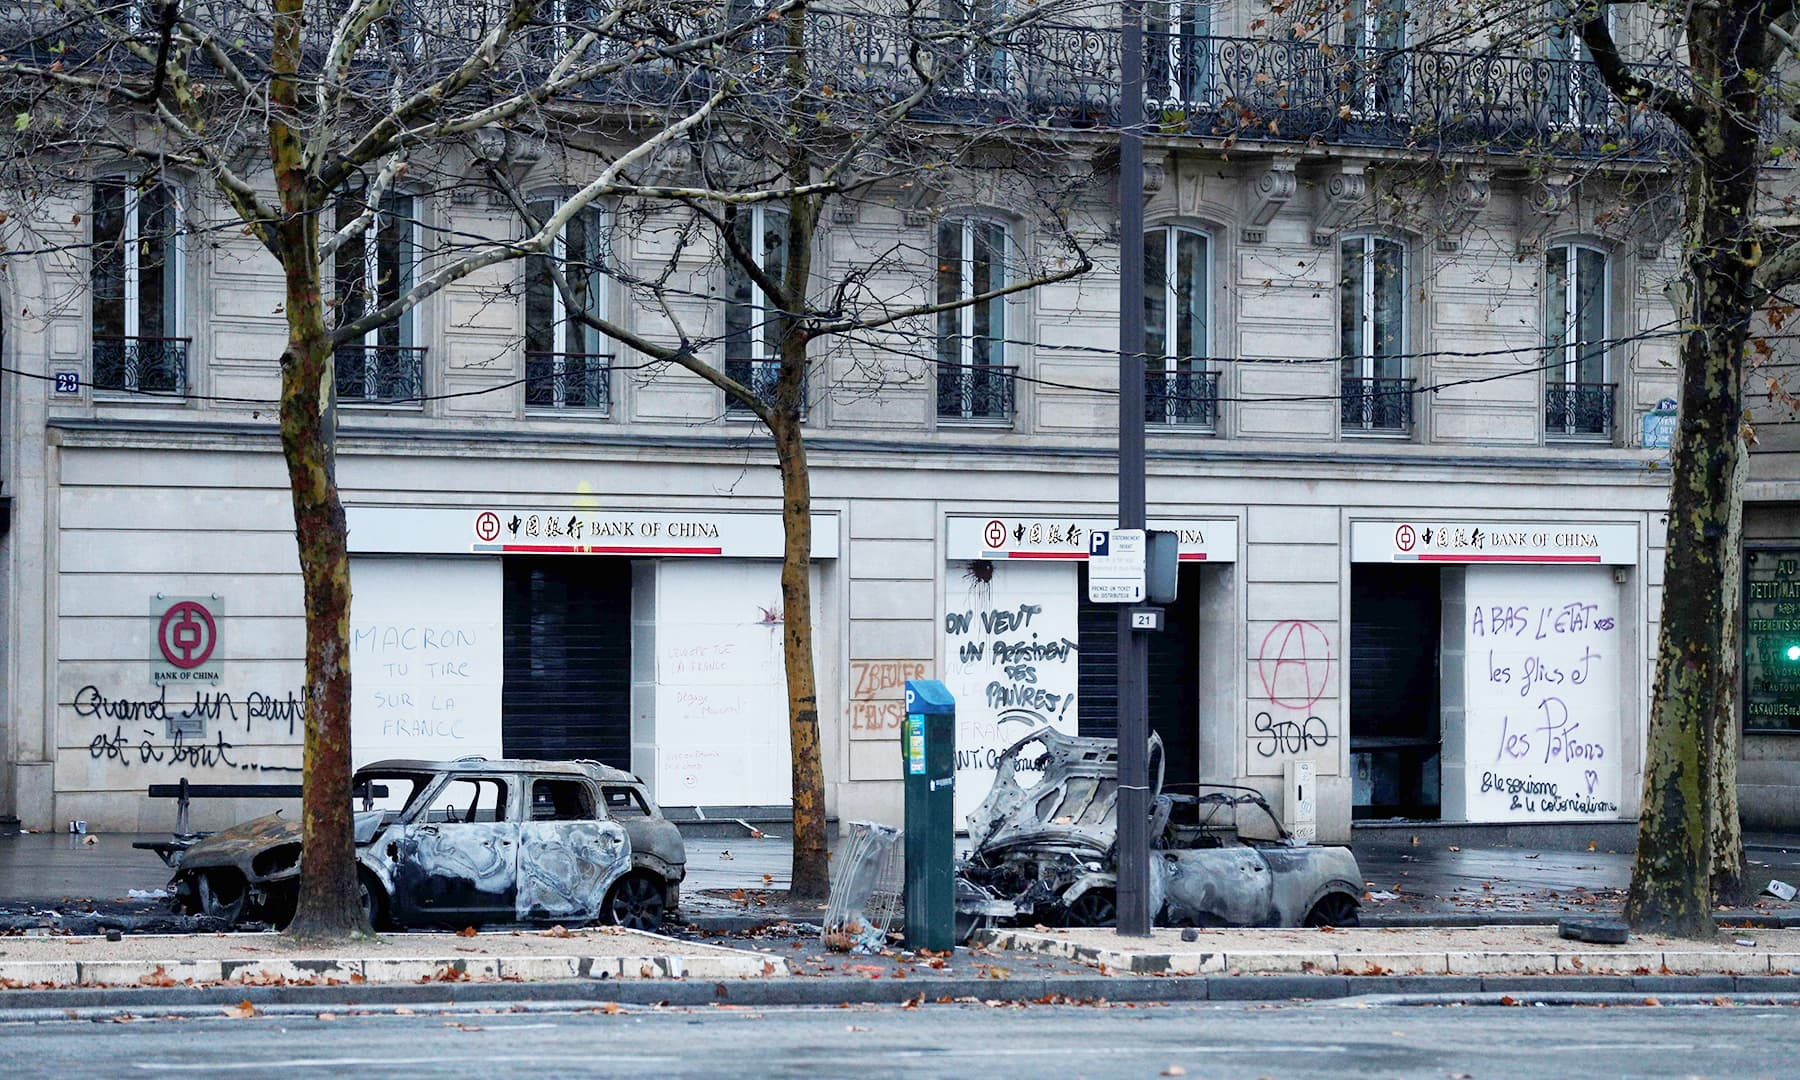 Burned down cars and graffiti littered walls presented a sombre picture the following morning. —AFP